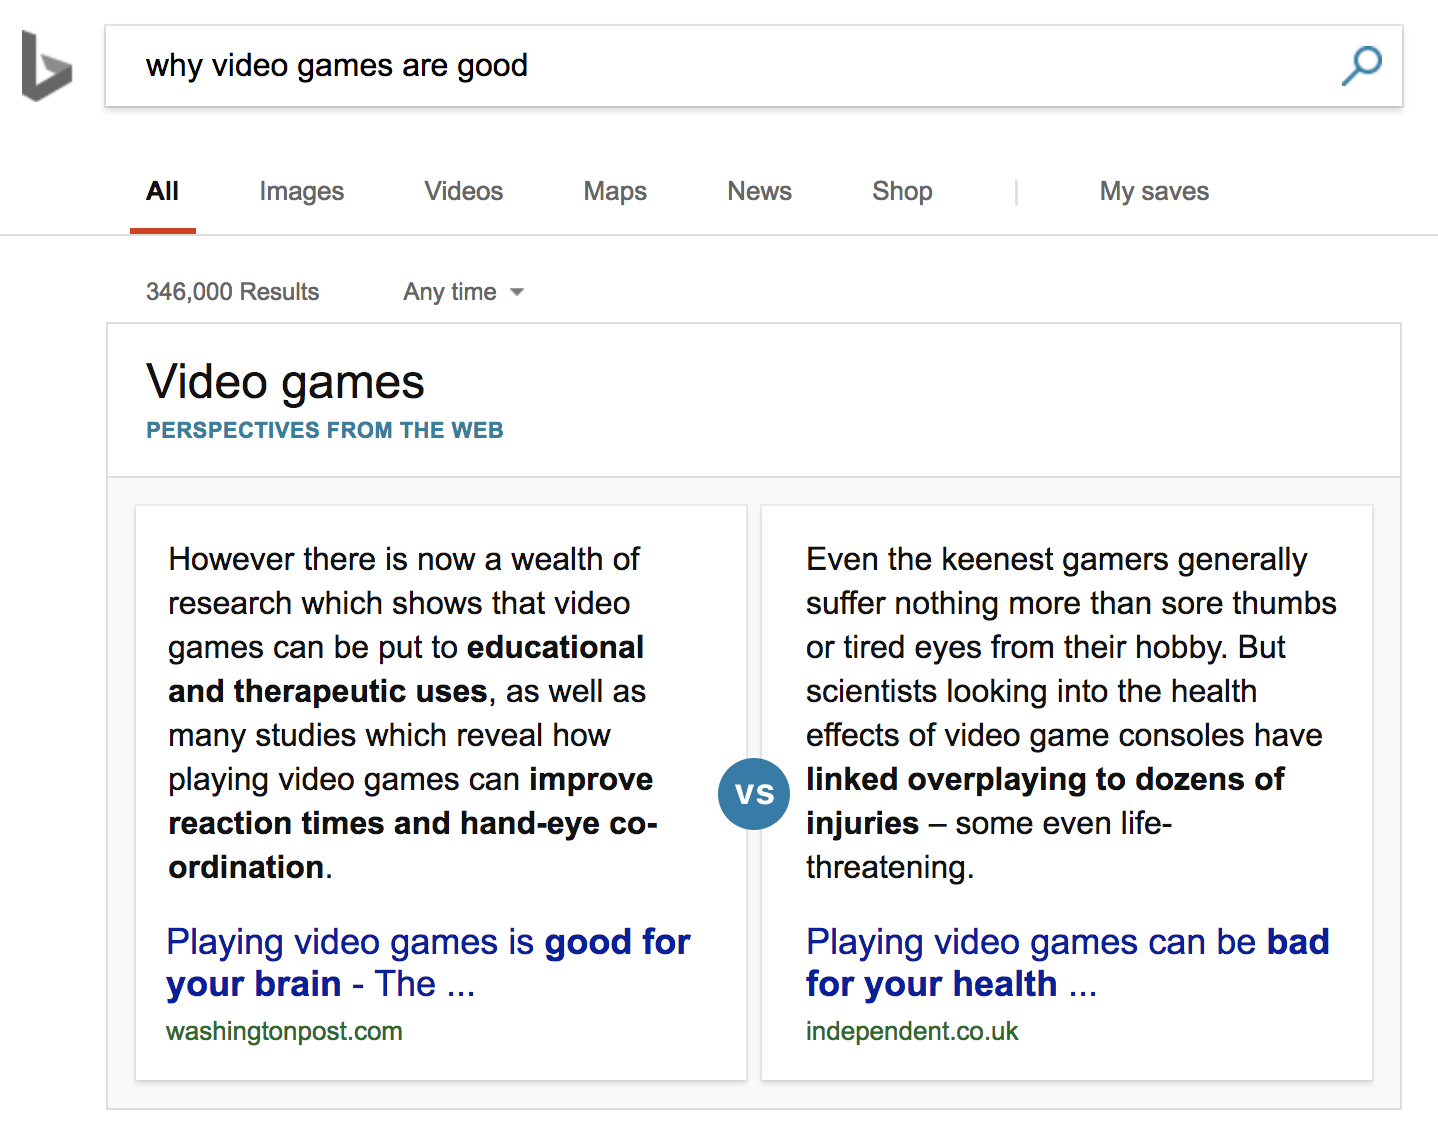 bing-video-games